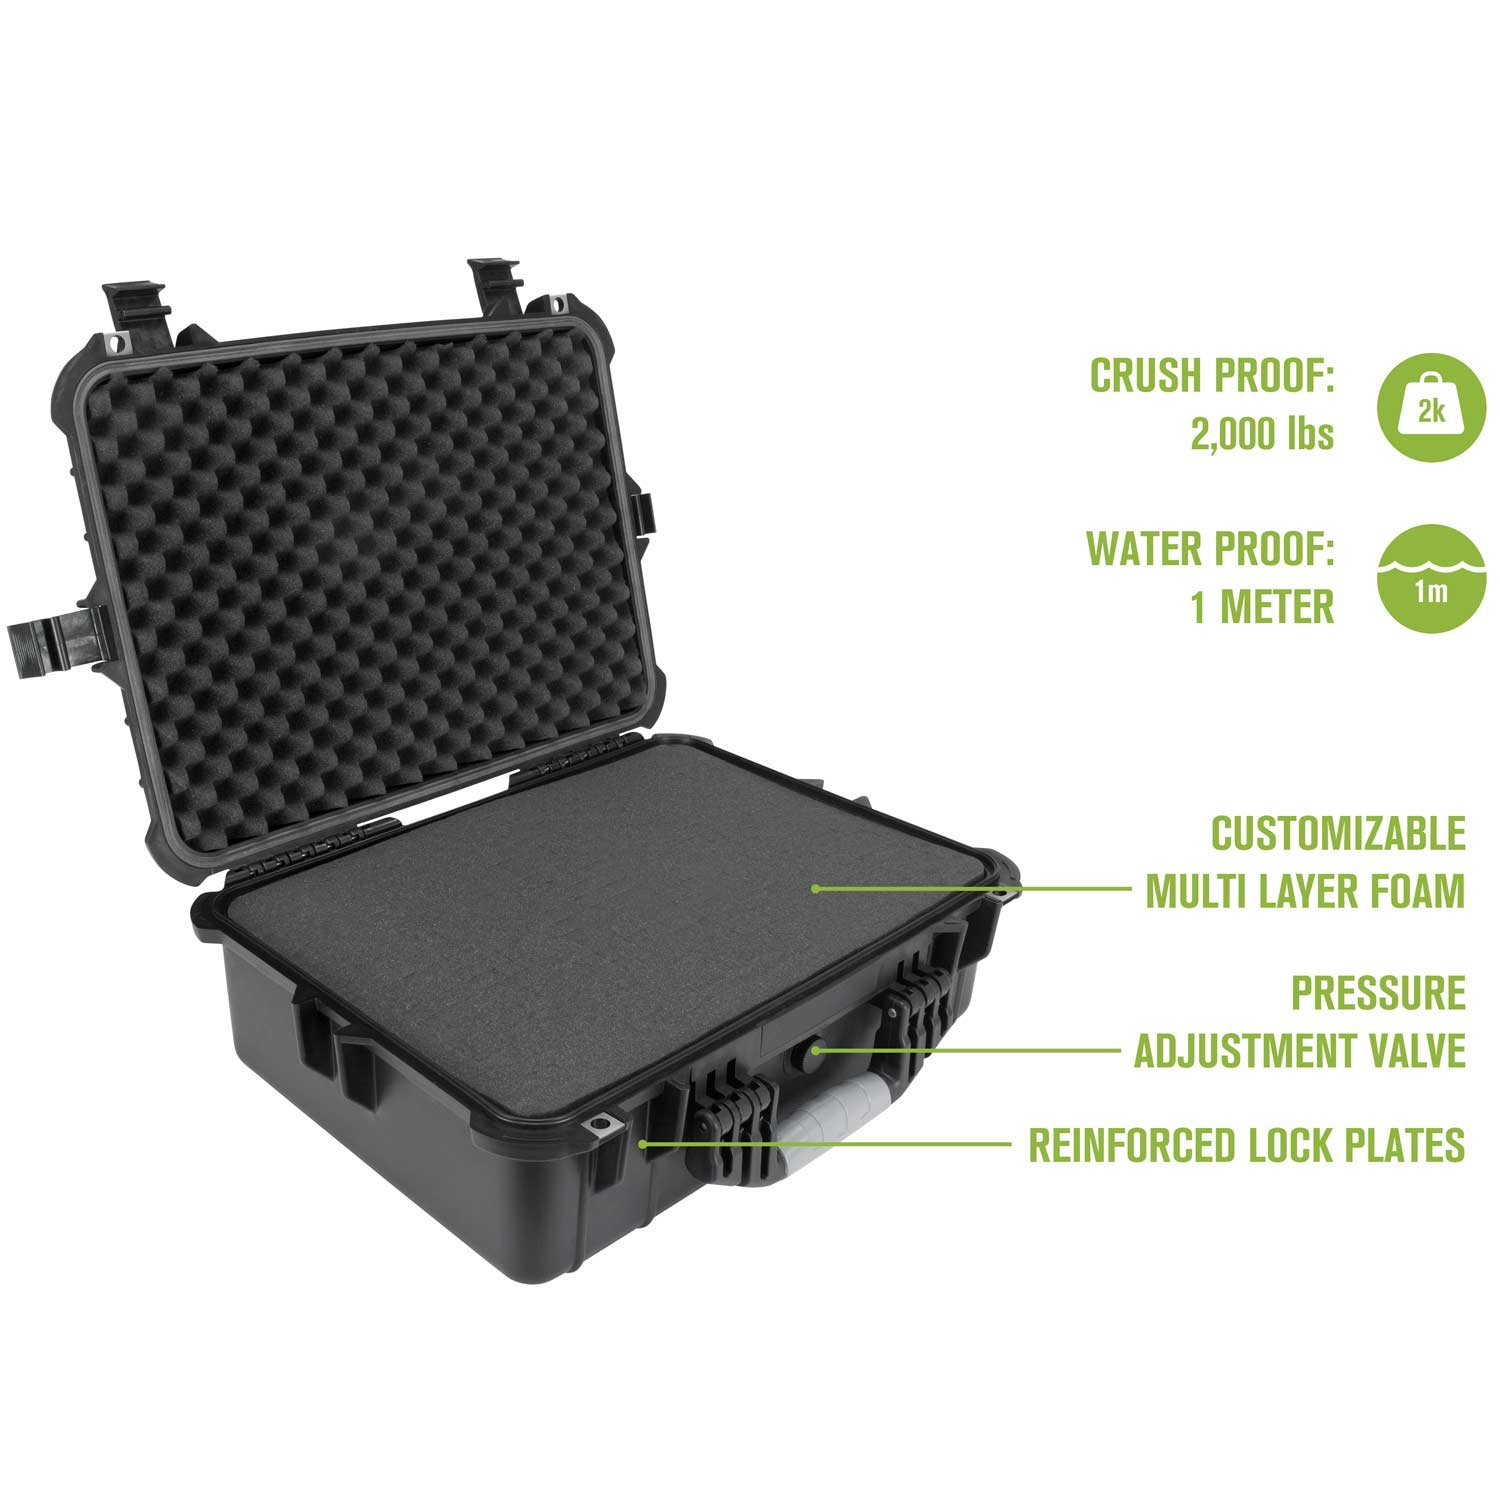 Elkton Outdoors Hard Gun Case: Fully Customizable Pistol Case: Holds 5 Handguns and 10 Magazines: Crush Resistant & Waterproof! by Elkton Outdoors (Image #2)